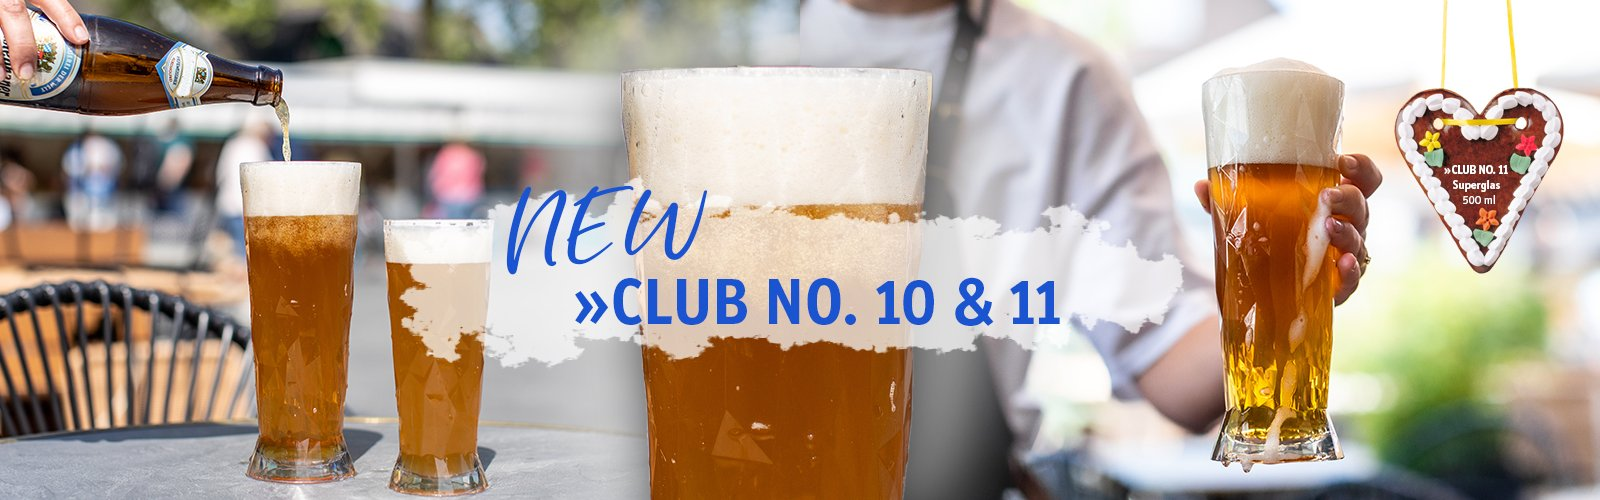 Beerglass CLUB NO. 10 & 11